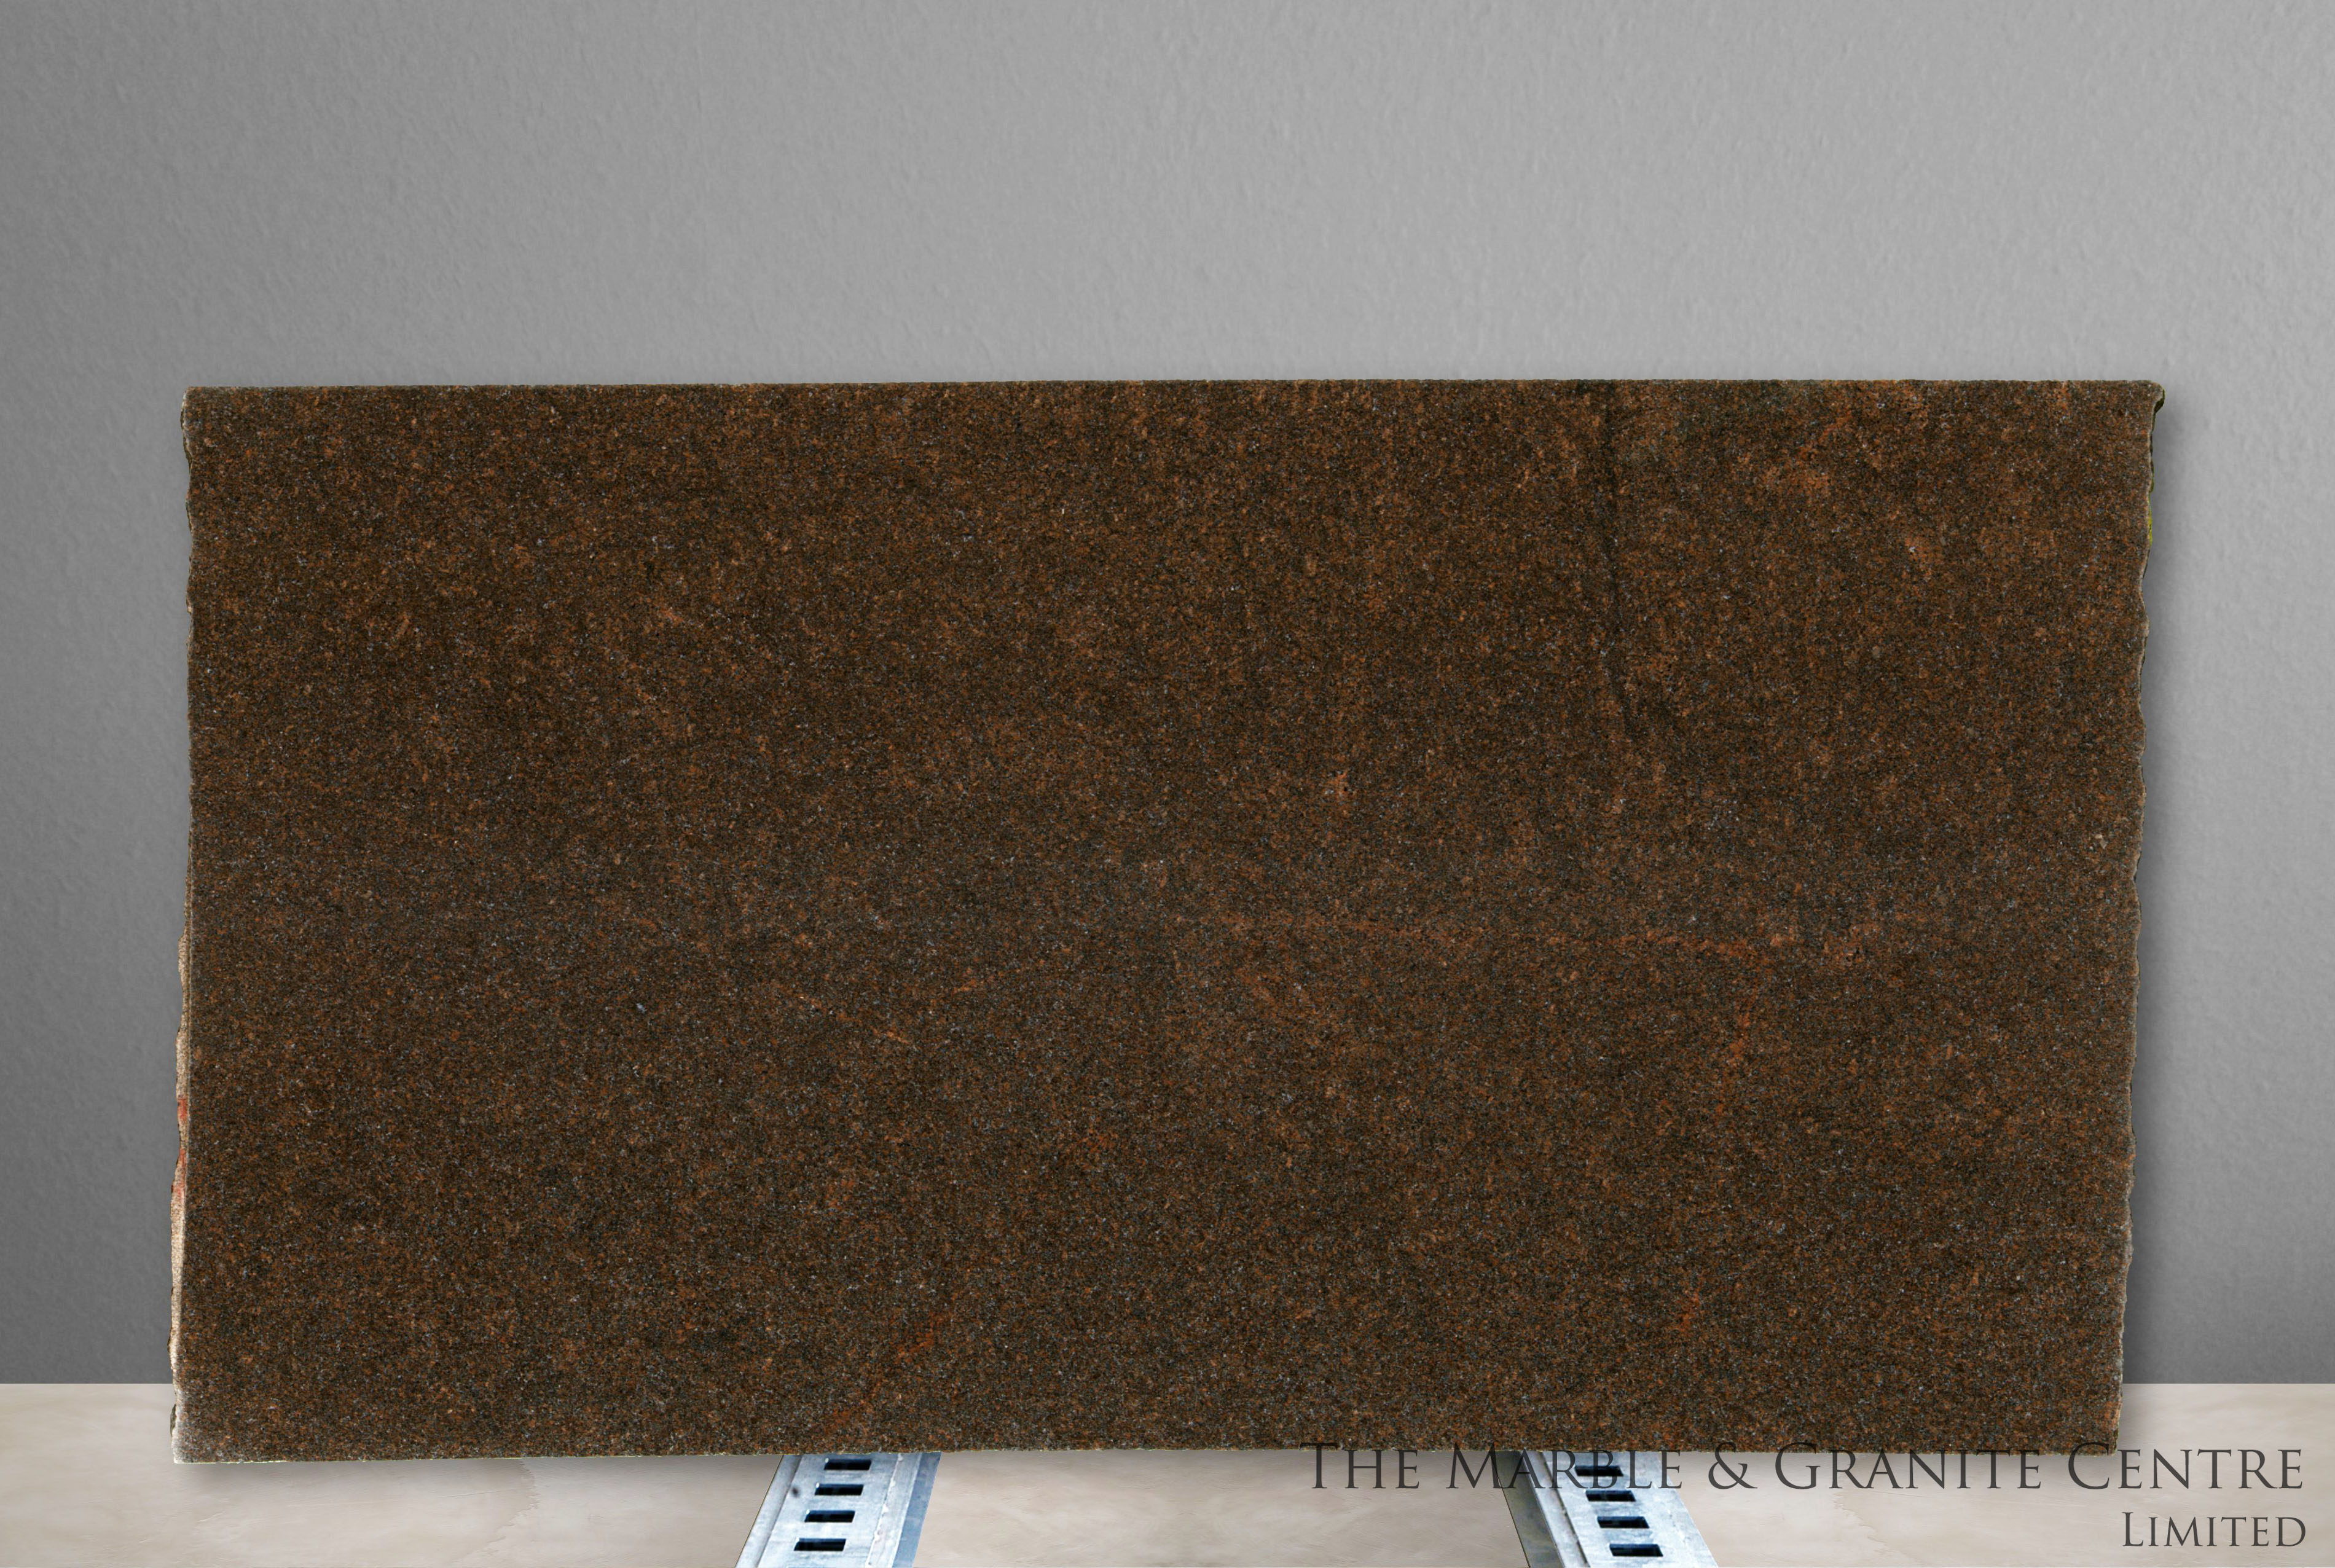 Granite Dakota Mahogany Polished 30 mm [27128]